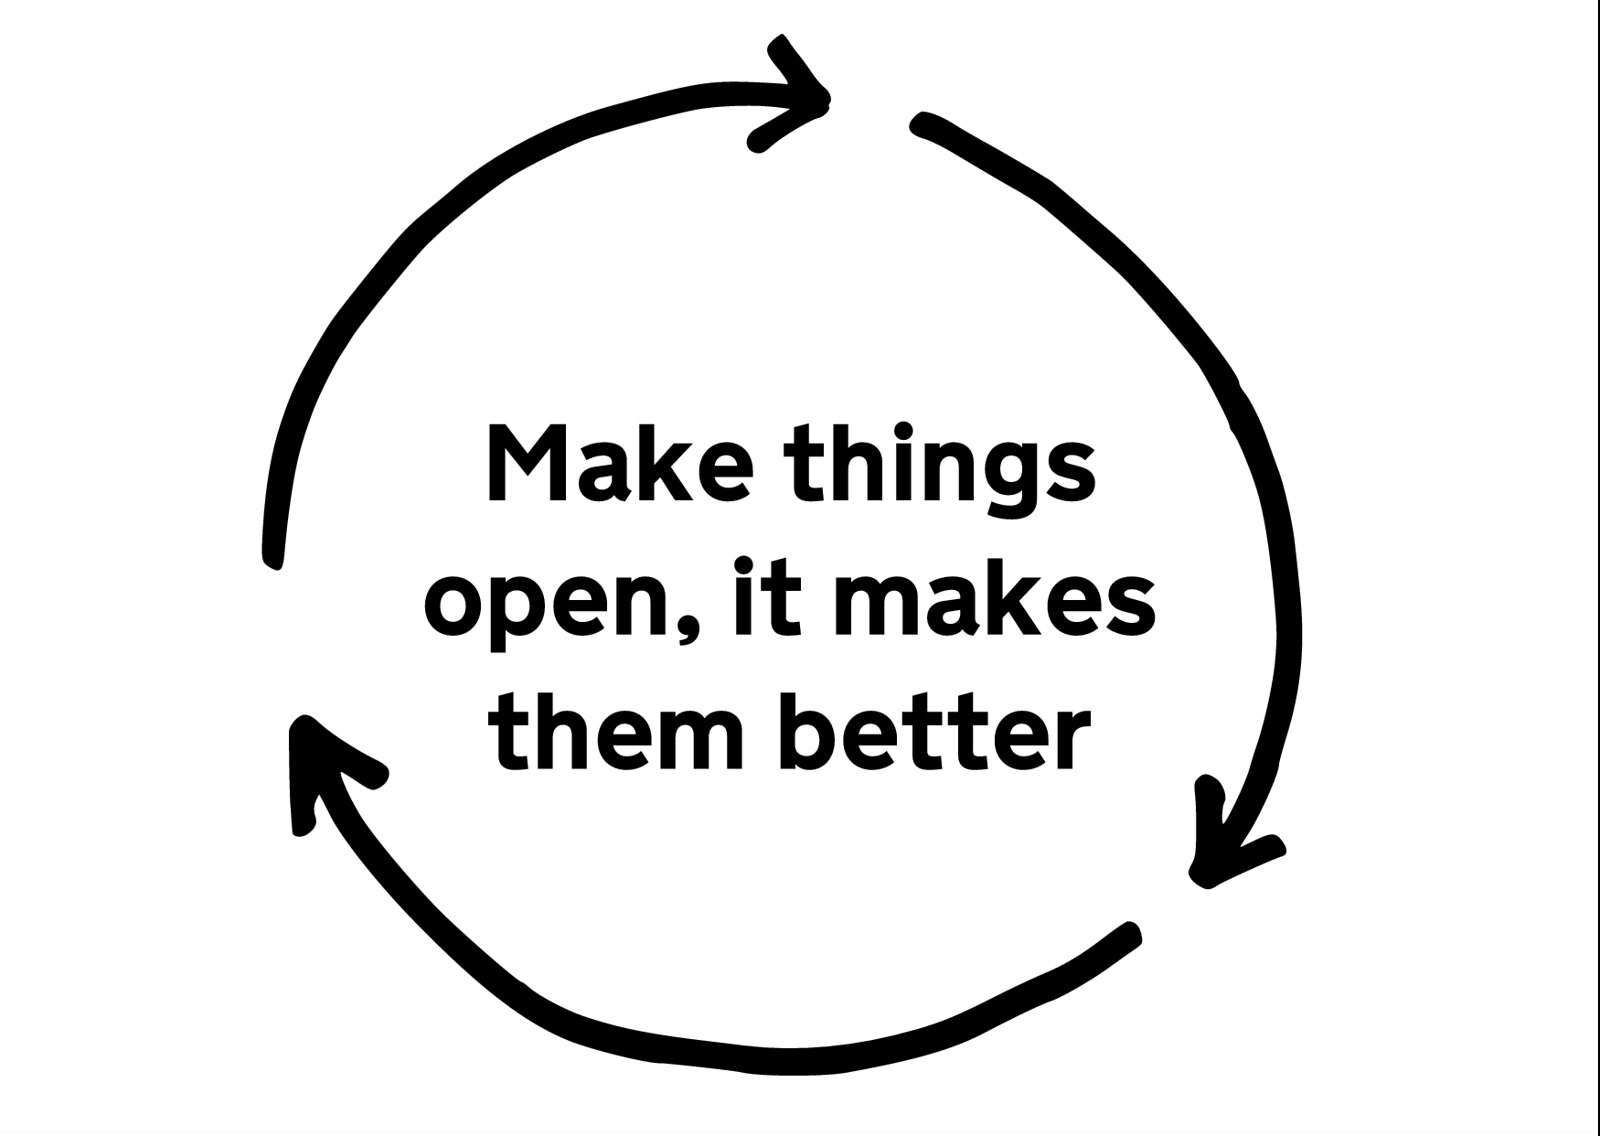 10-make-things-open-it-makes-them-better